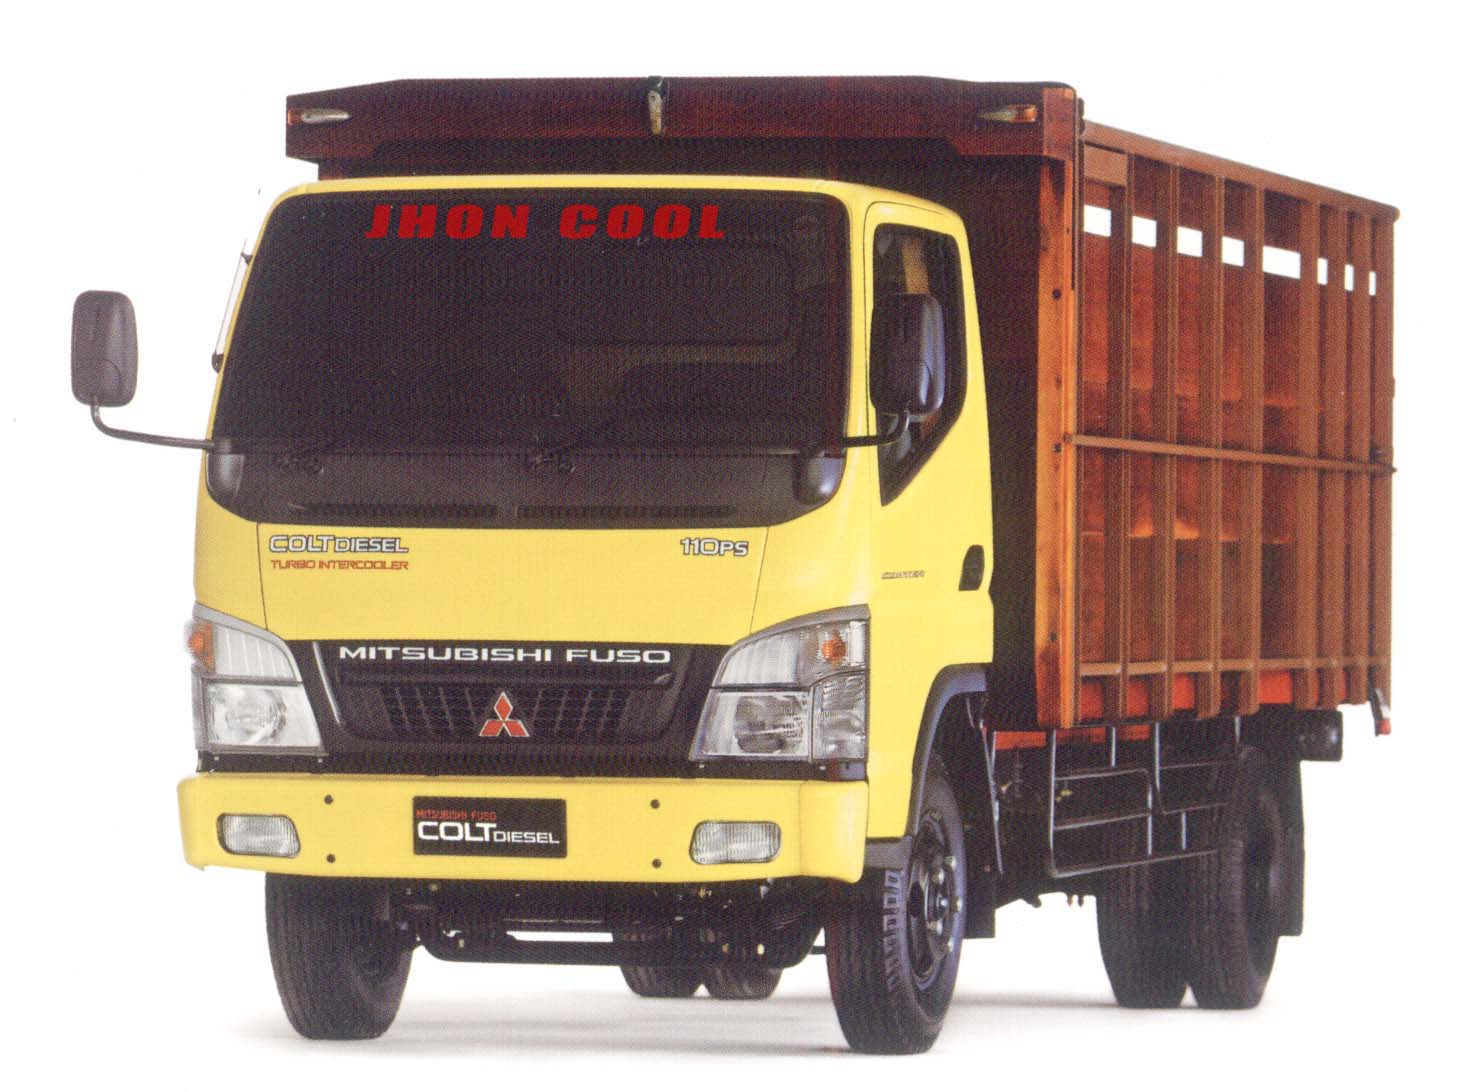 mitsubishi fuso colt diesel 110 ps there are two types of fe 71 fe 4 -4.bp.blogspot.com